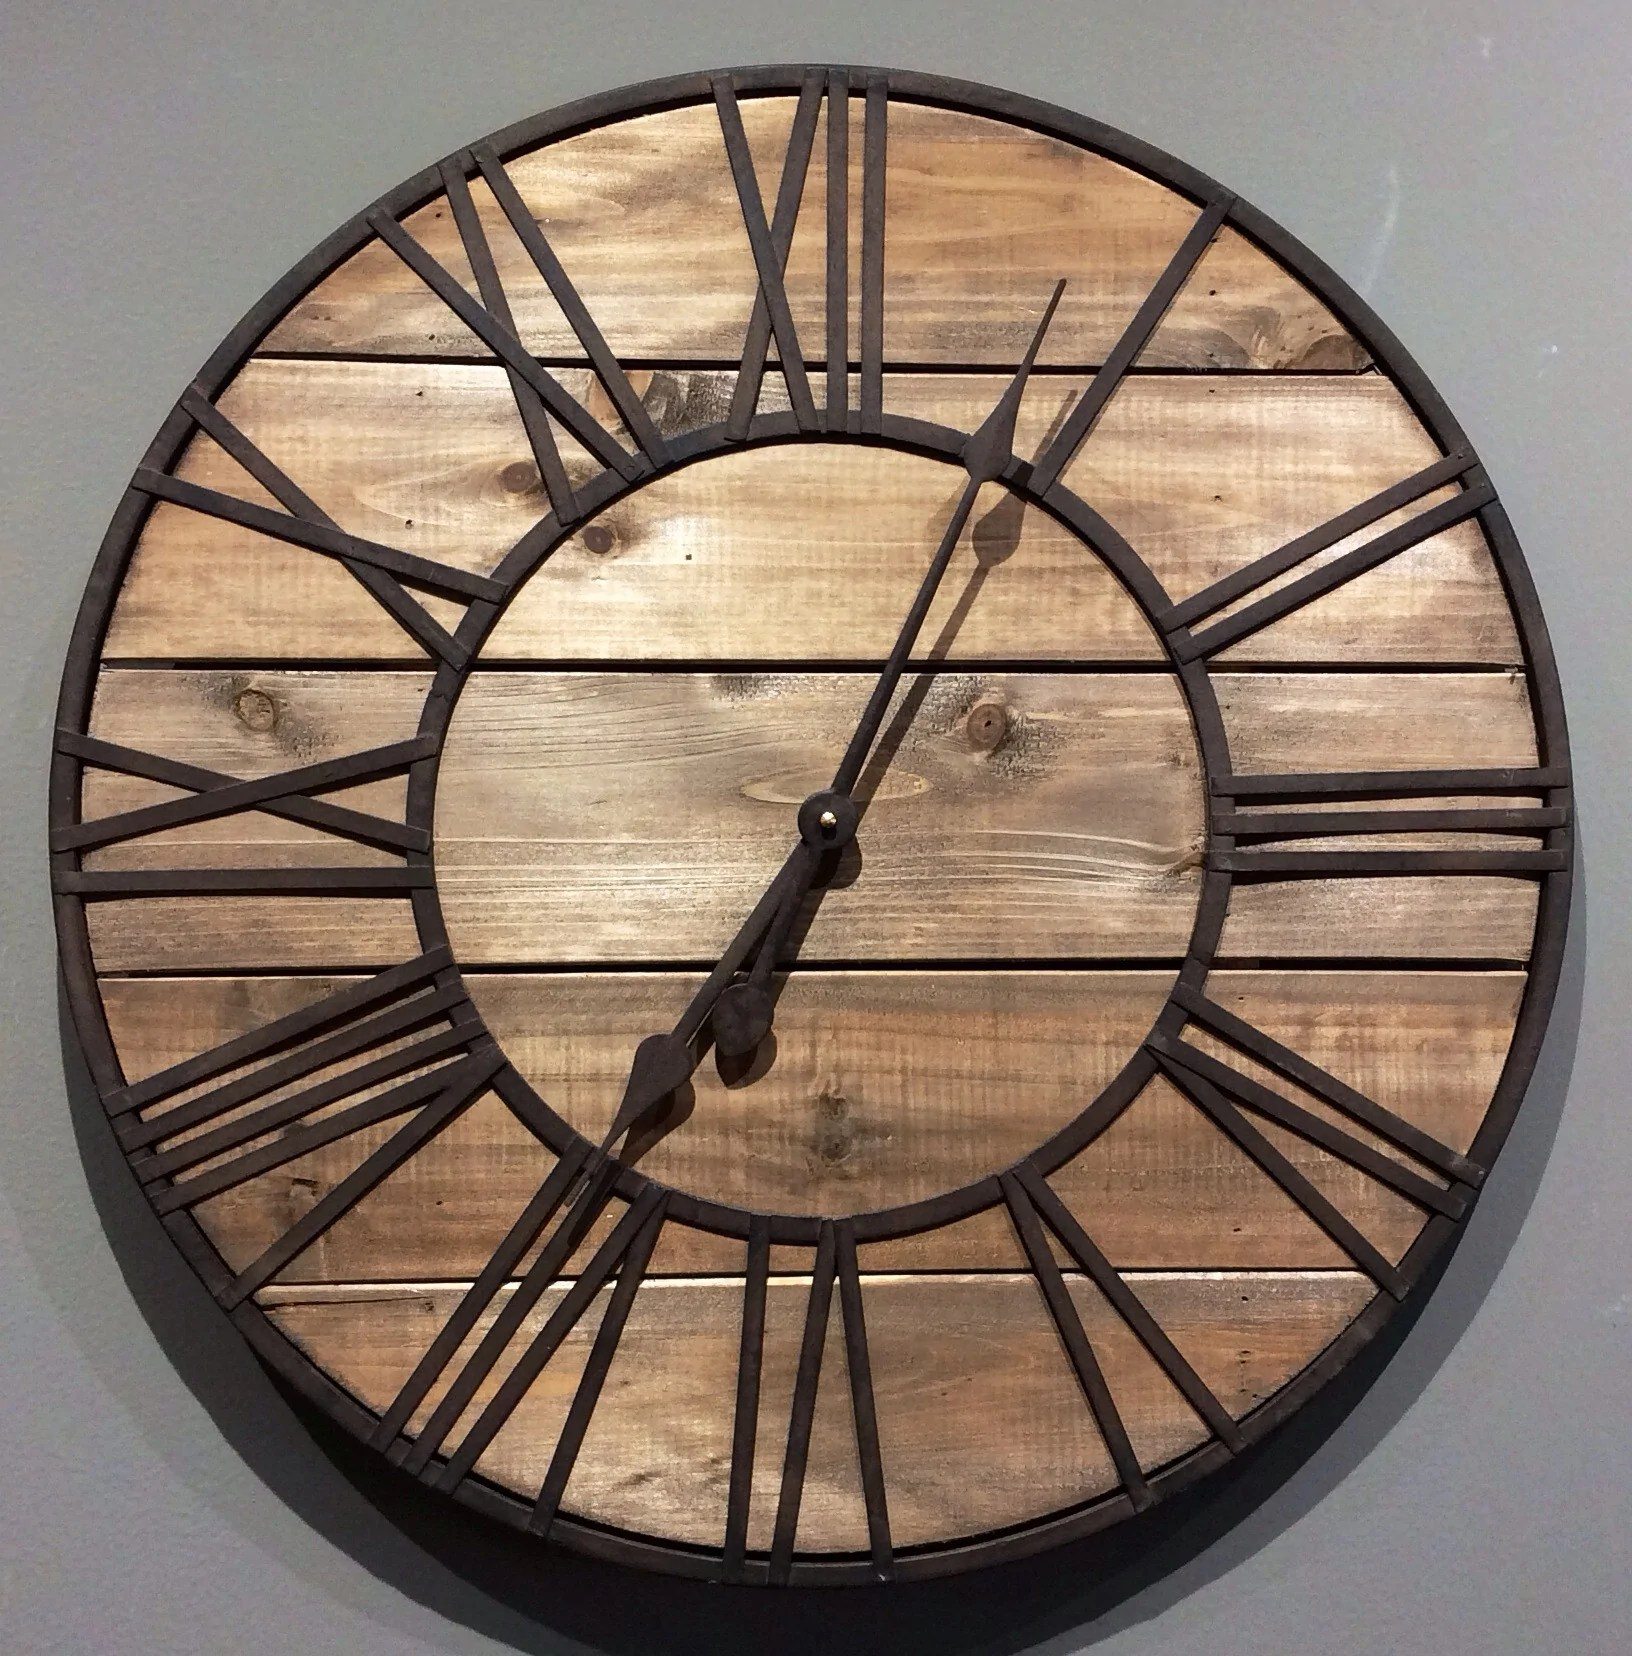 Sightly Clock Round Wood Metal Roman Numeral Clock Clock Round Wood Metal Roman Numeral Clock Red Barn Roman Numeral Clock Decals Roman Numeral Clock Vector houzz-03 Roman Numeral Clock